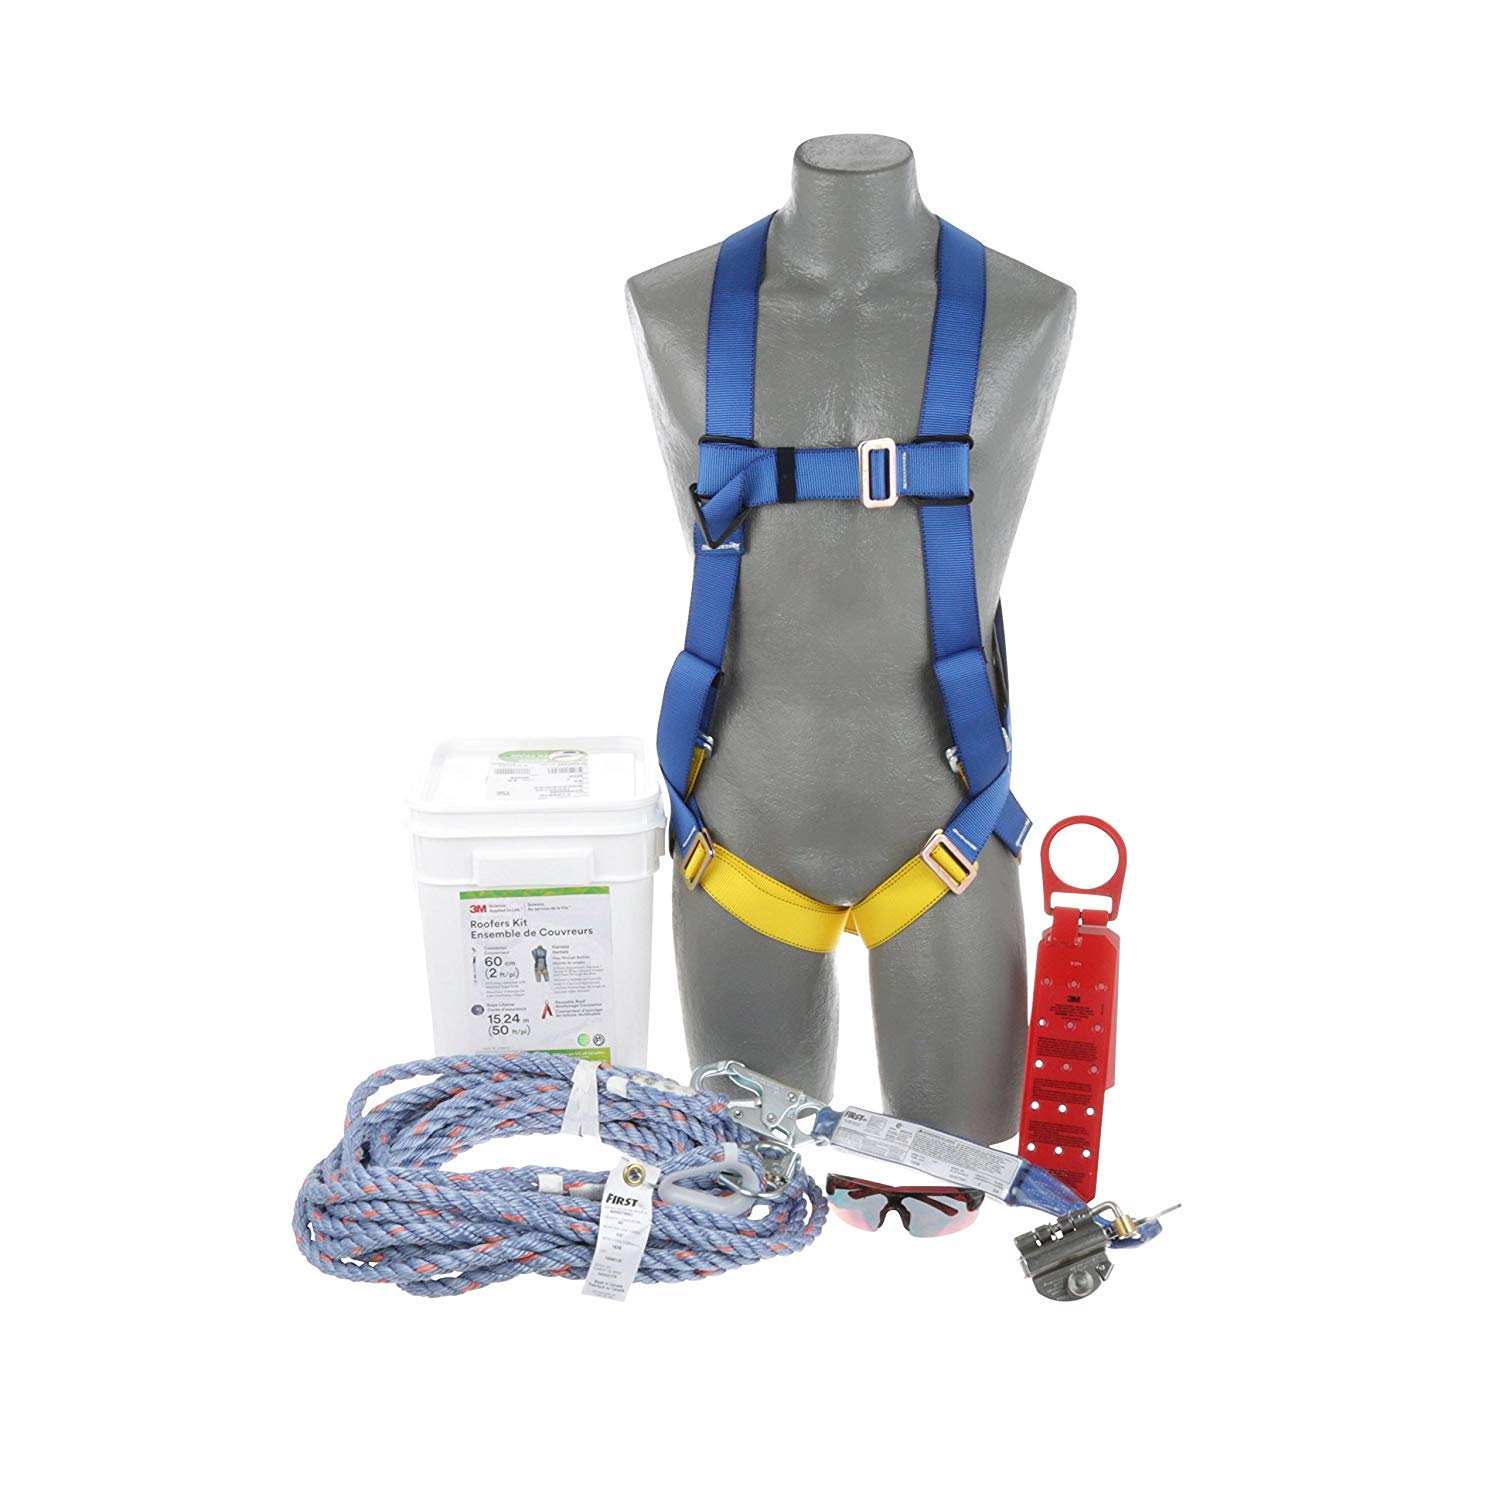 3M Protecta Compliance In A Can Light, Roofers Kit, 5-Point Universal Harness, Single Leg 6' Shock Absorbing Lanyard, 310 lb, 2199802 (Big White Bucket)